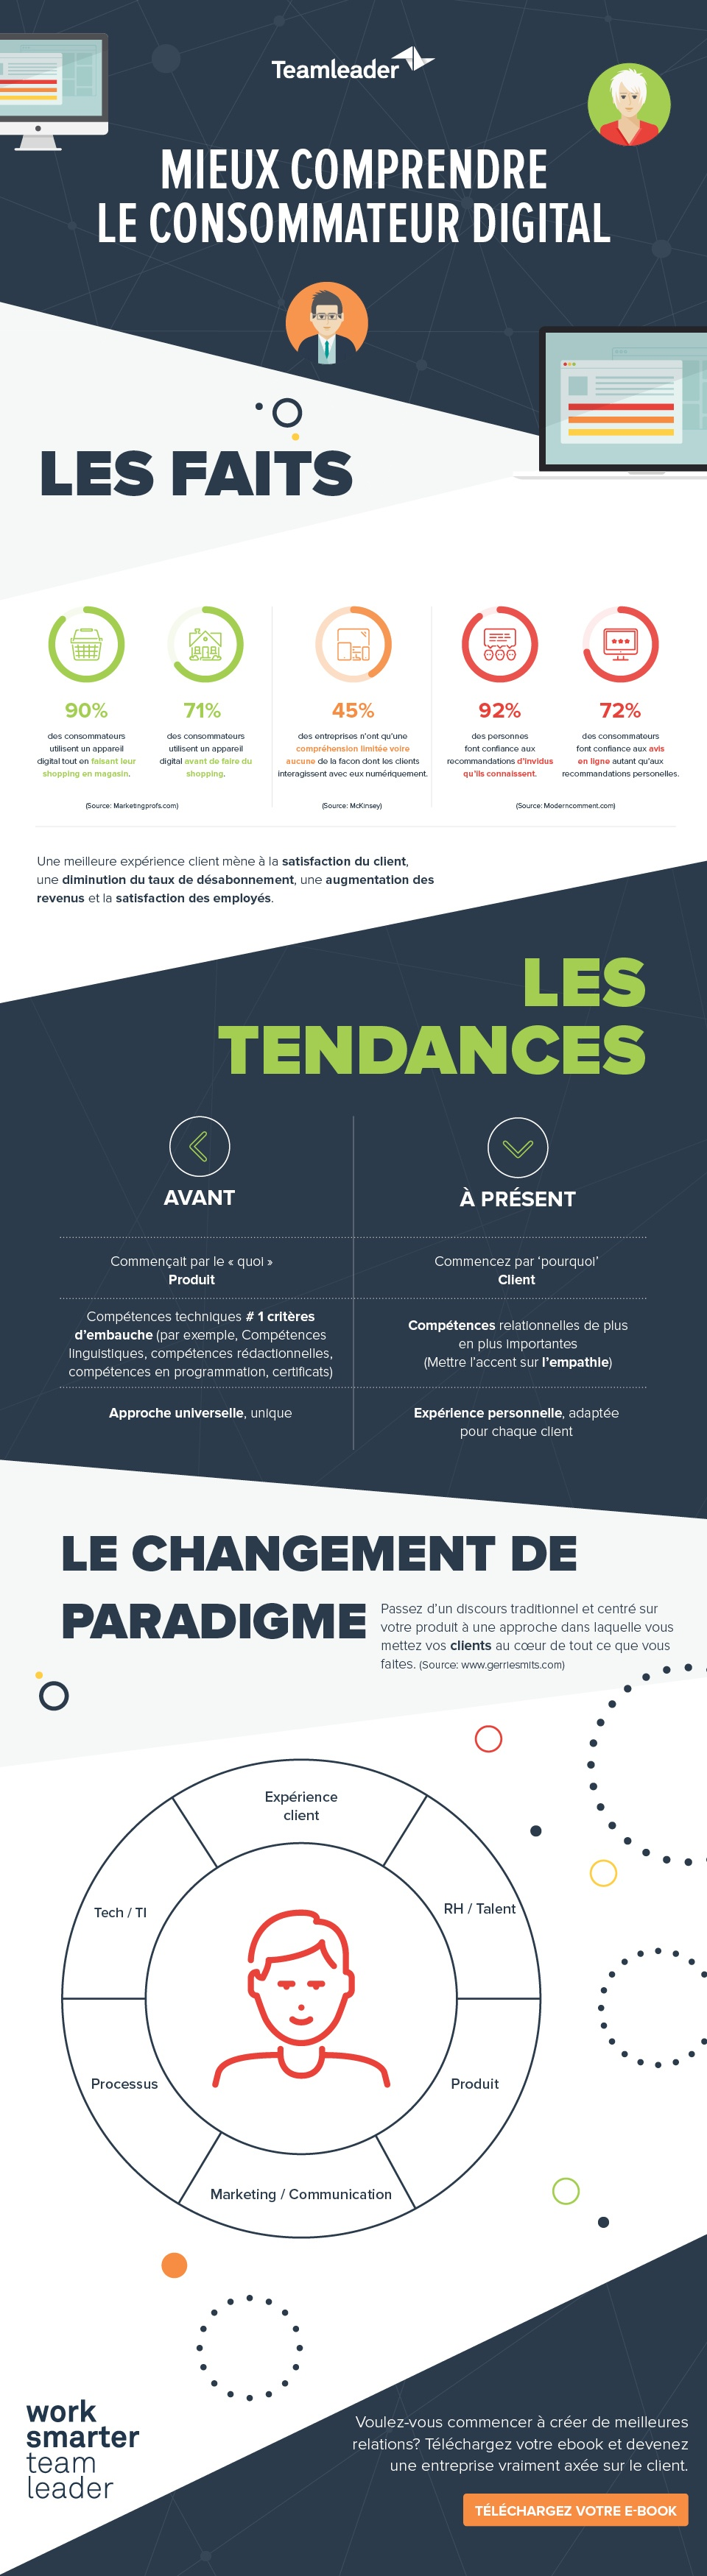 20170724_digitalConsumer_infographic_FR.jpg